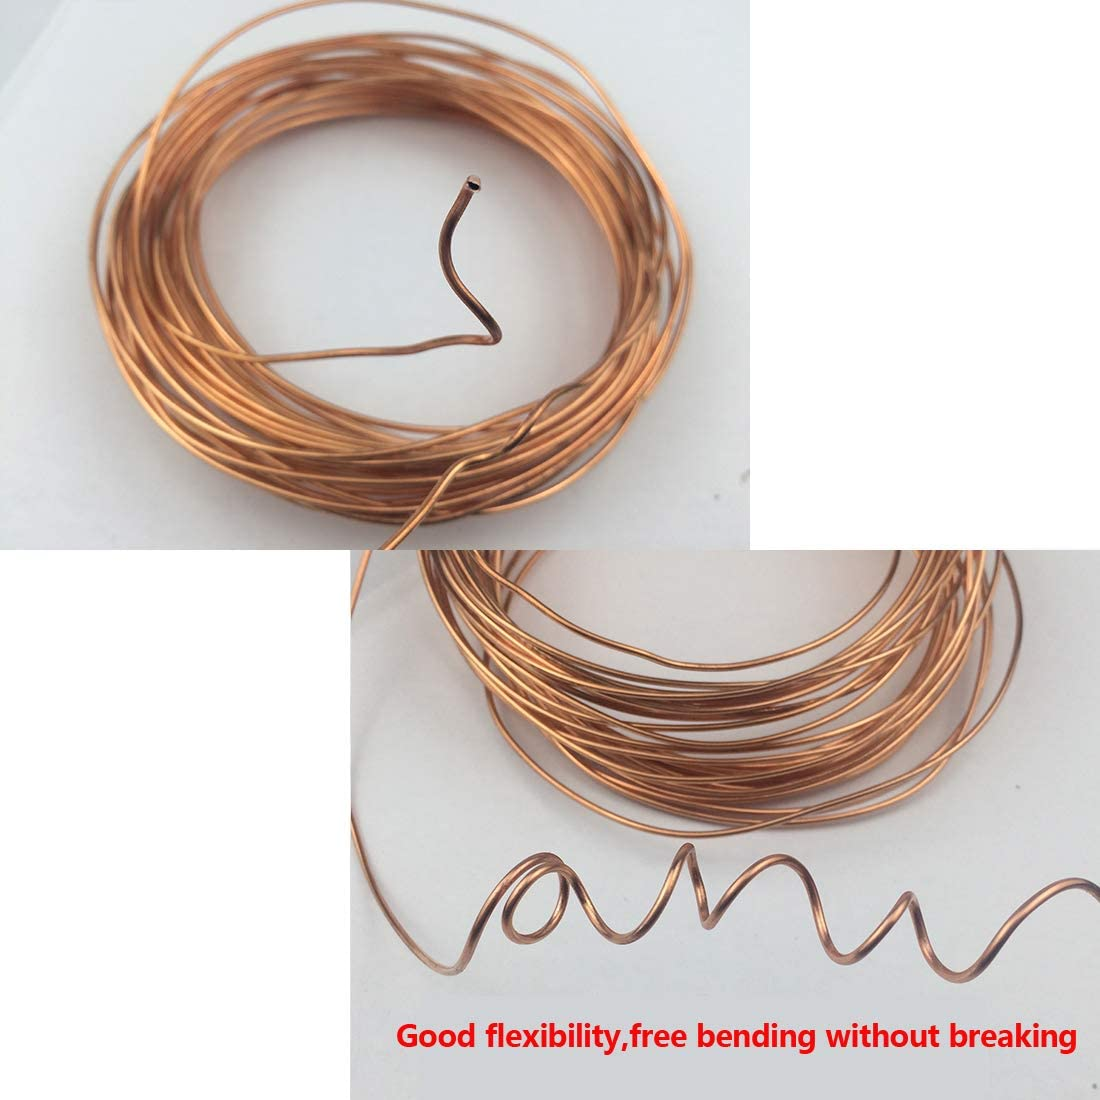 sourcing map Refrigeration Tubing 1//8 OD x 5//64 ID x 9.8 Ft Soft Coil Copper Tubing